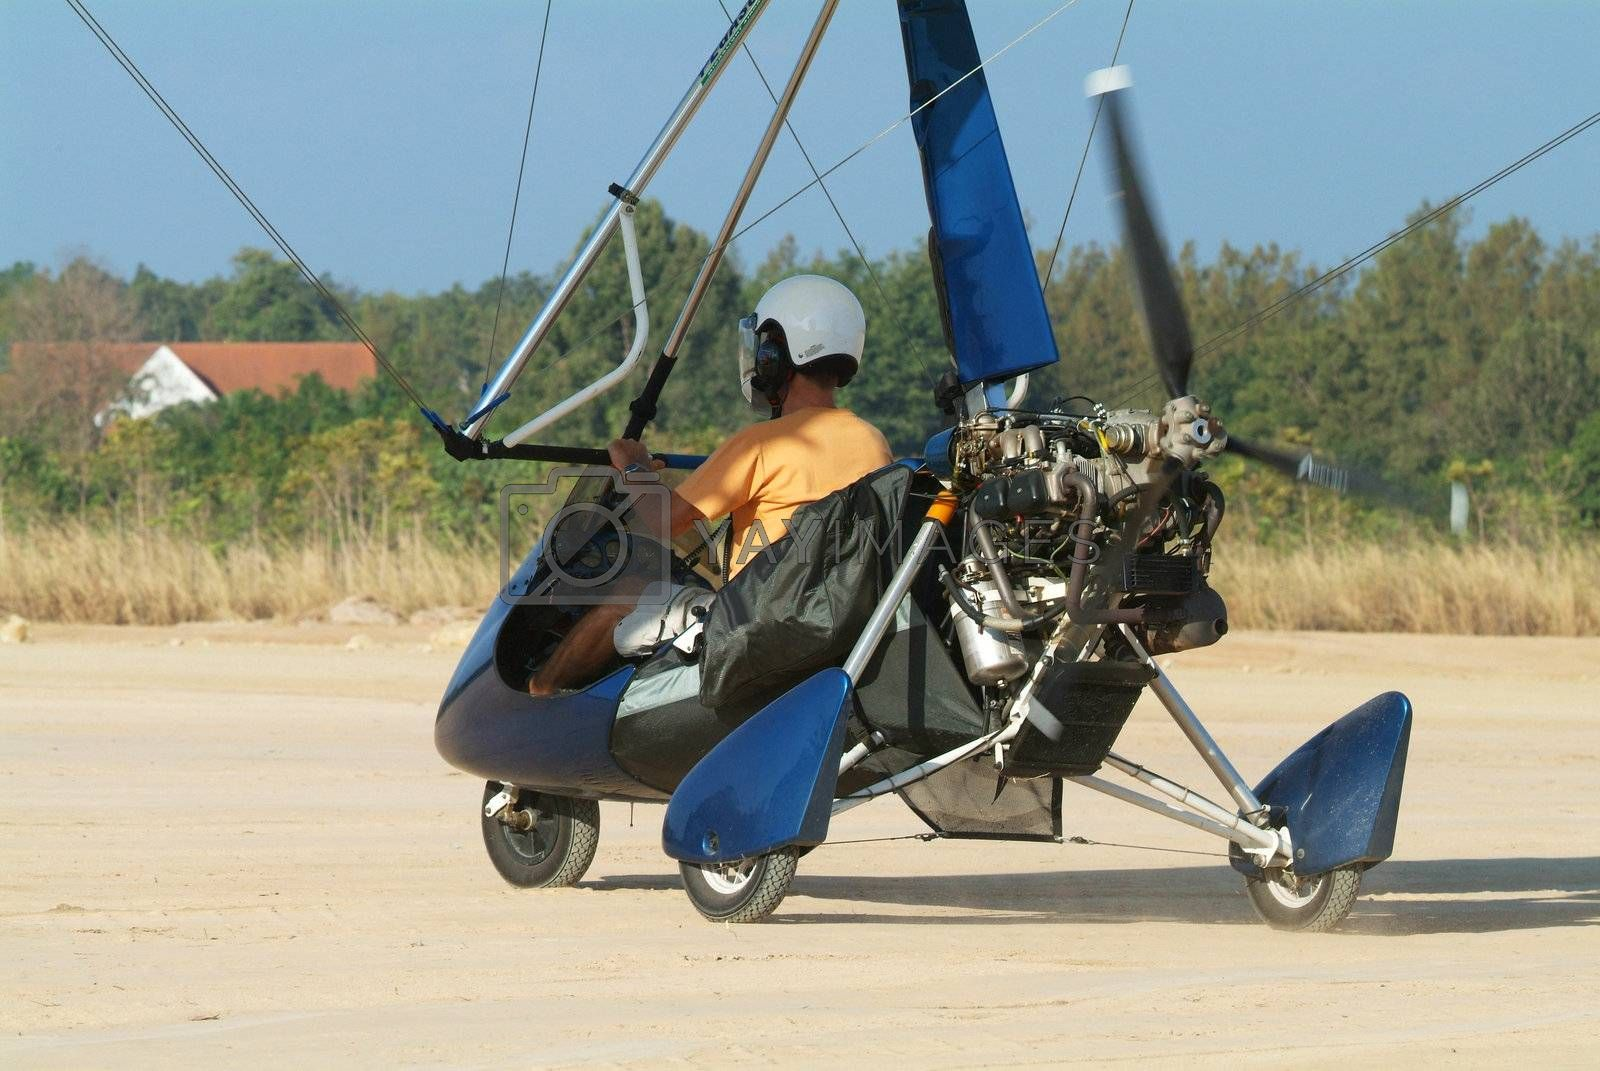 Microlight airplane on the ground by epixx